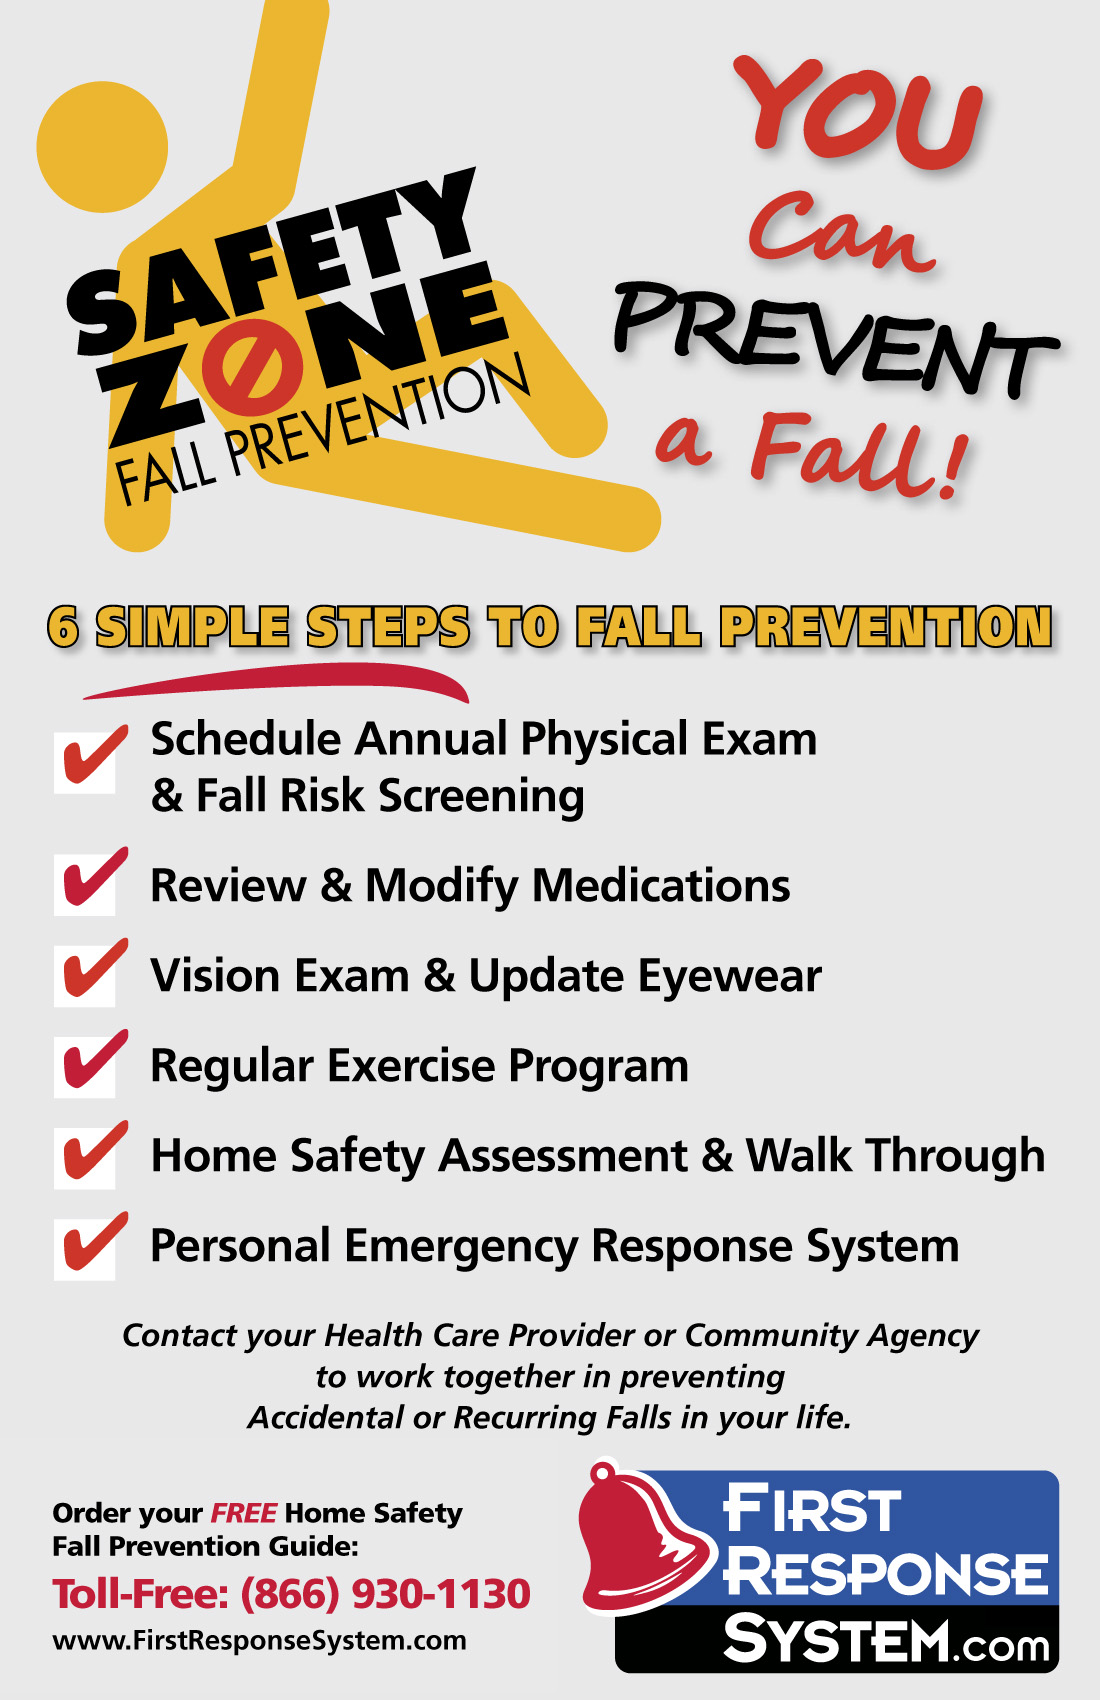 Fall Prevention Safety For Older Adults And Family Member